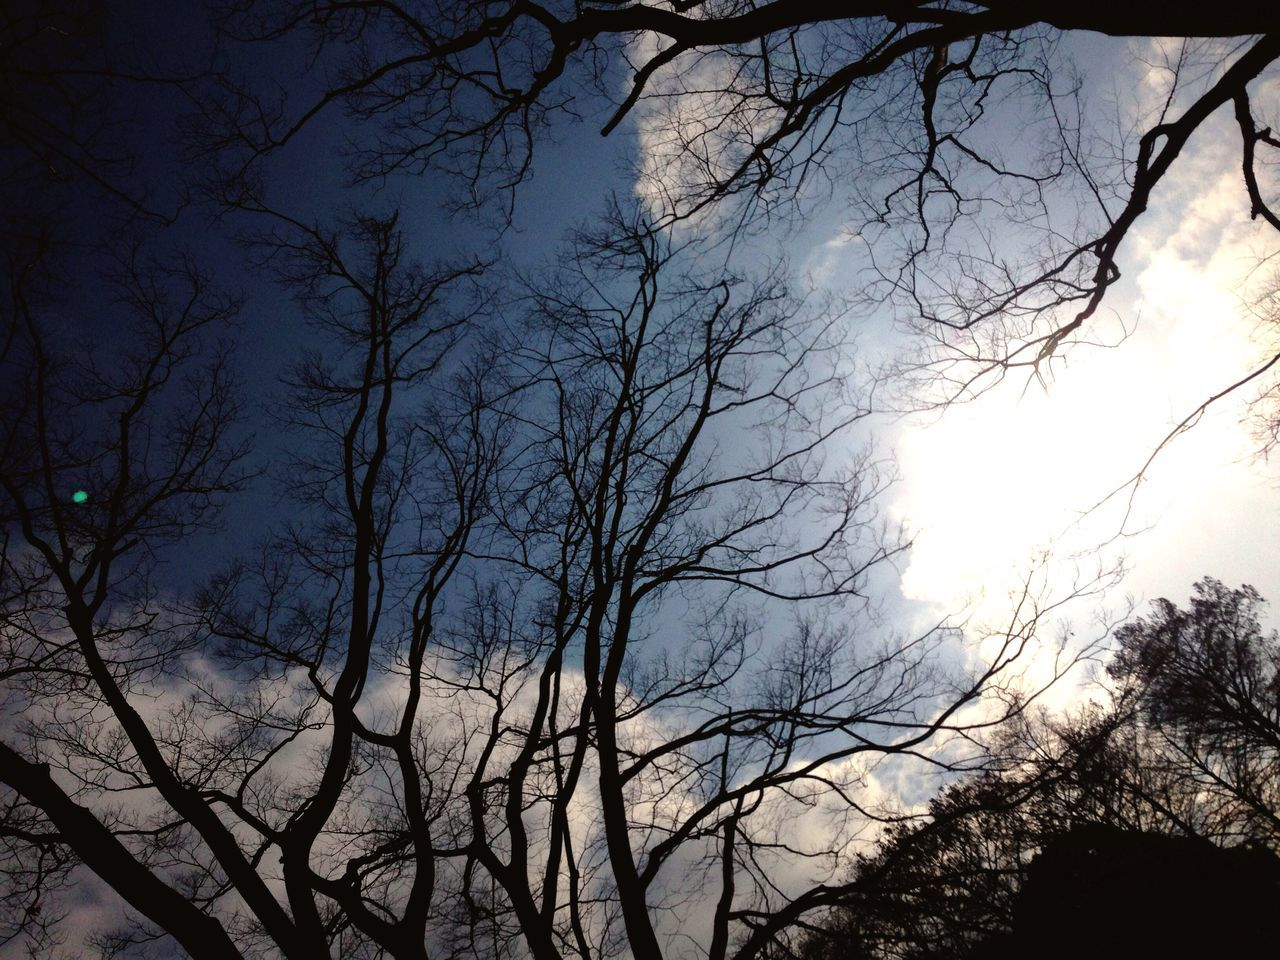 bare tree, tree, branch, nature, low angle view, outdoors, sky, no people, beauty in nature, day, silhouette, scenics